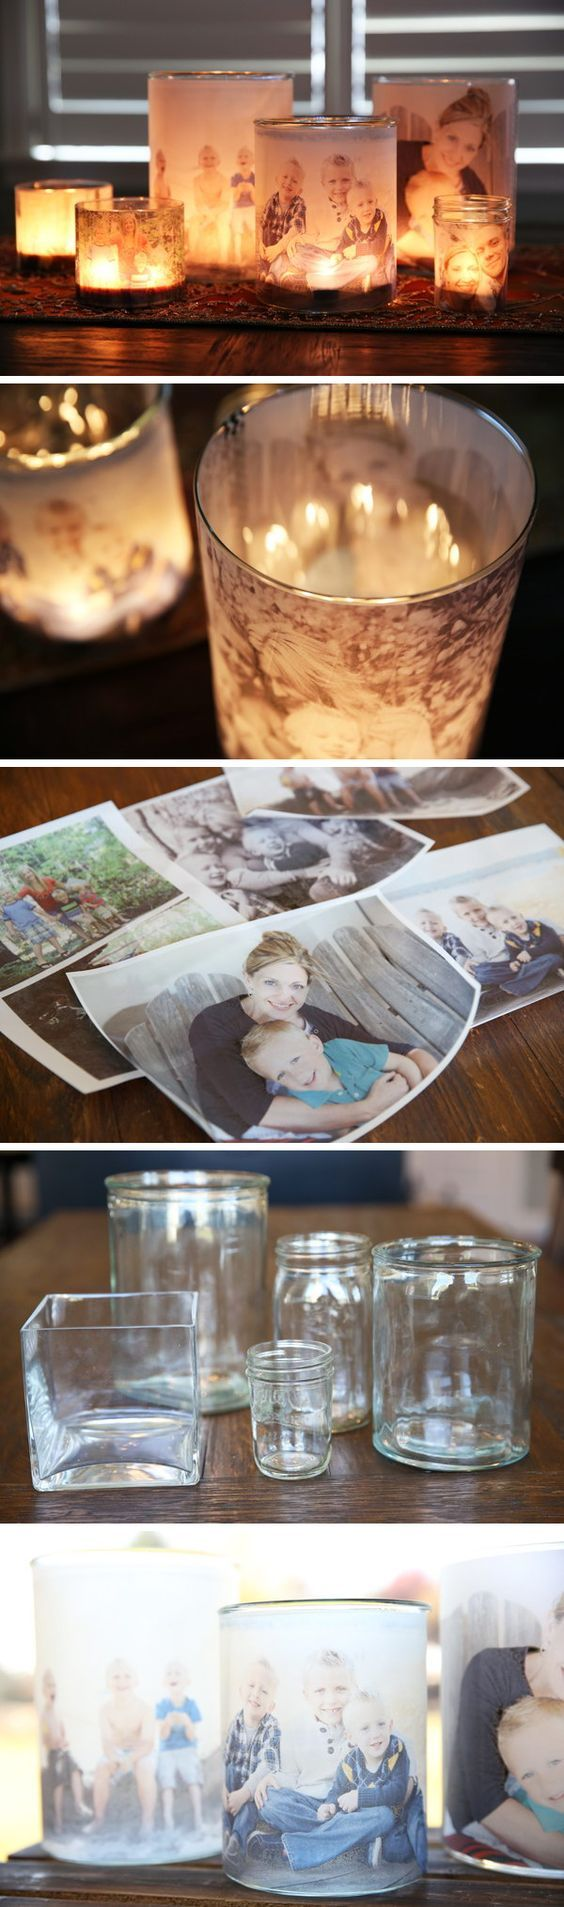 DIY photo luminaries                                                                                                                                                                                 More